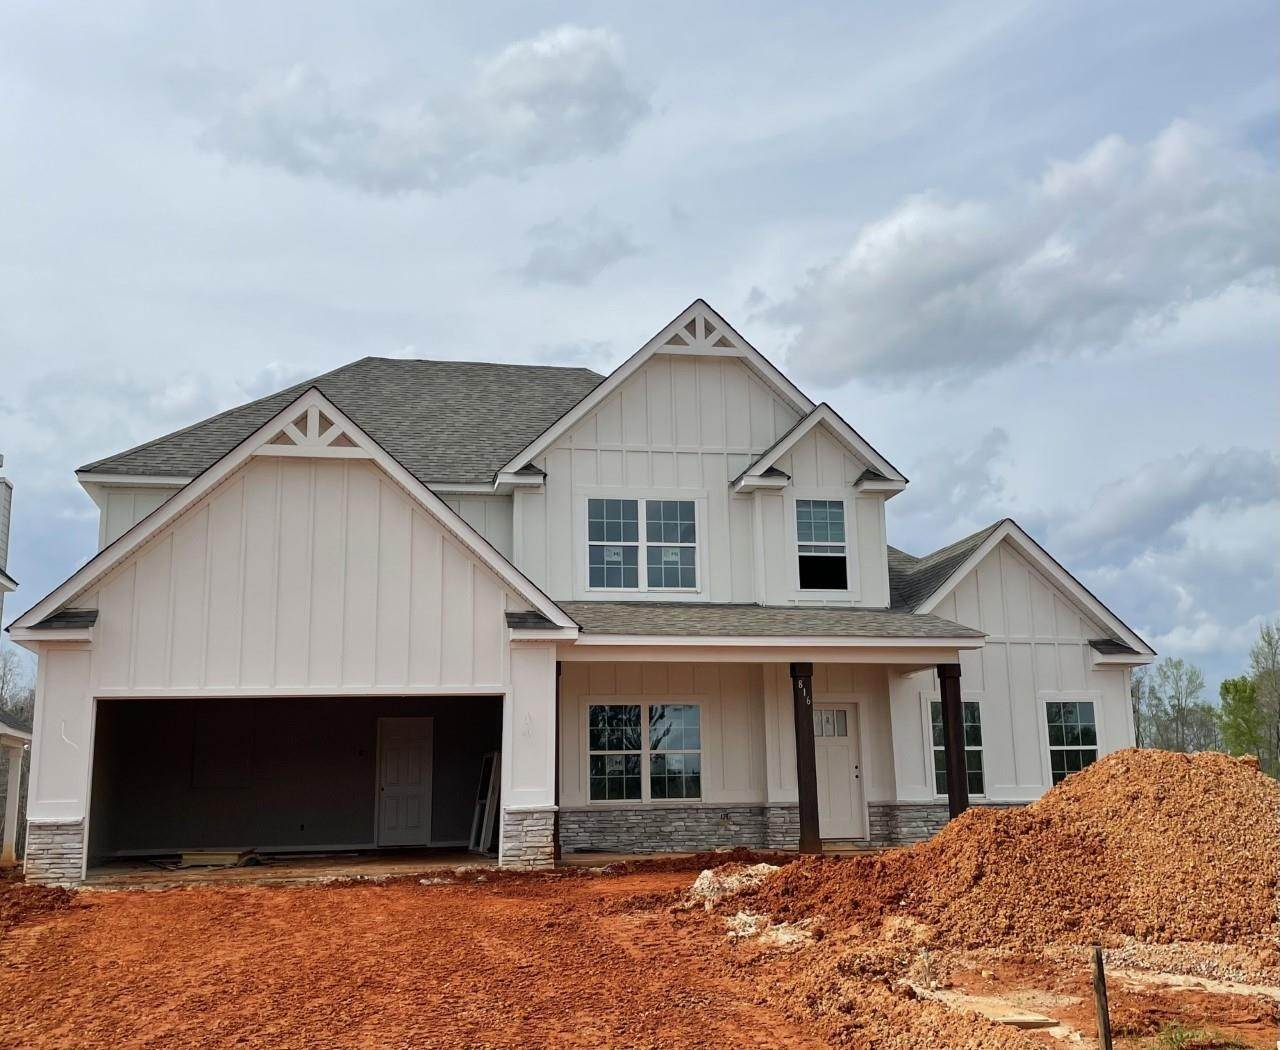 Single Family for Active at Wind River - Redbud B FORSYTH, GEORGIA 31029 UNITED STATES